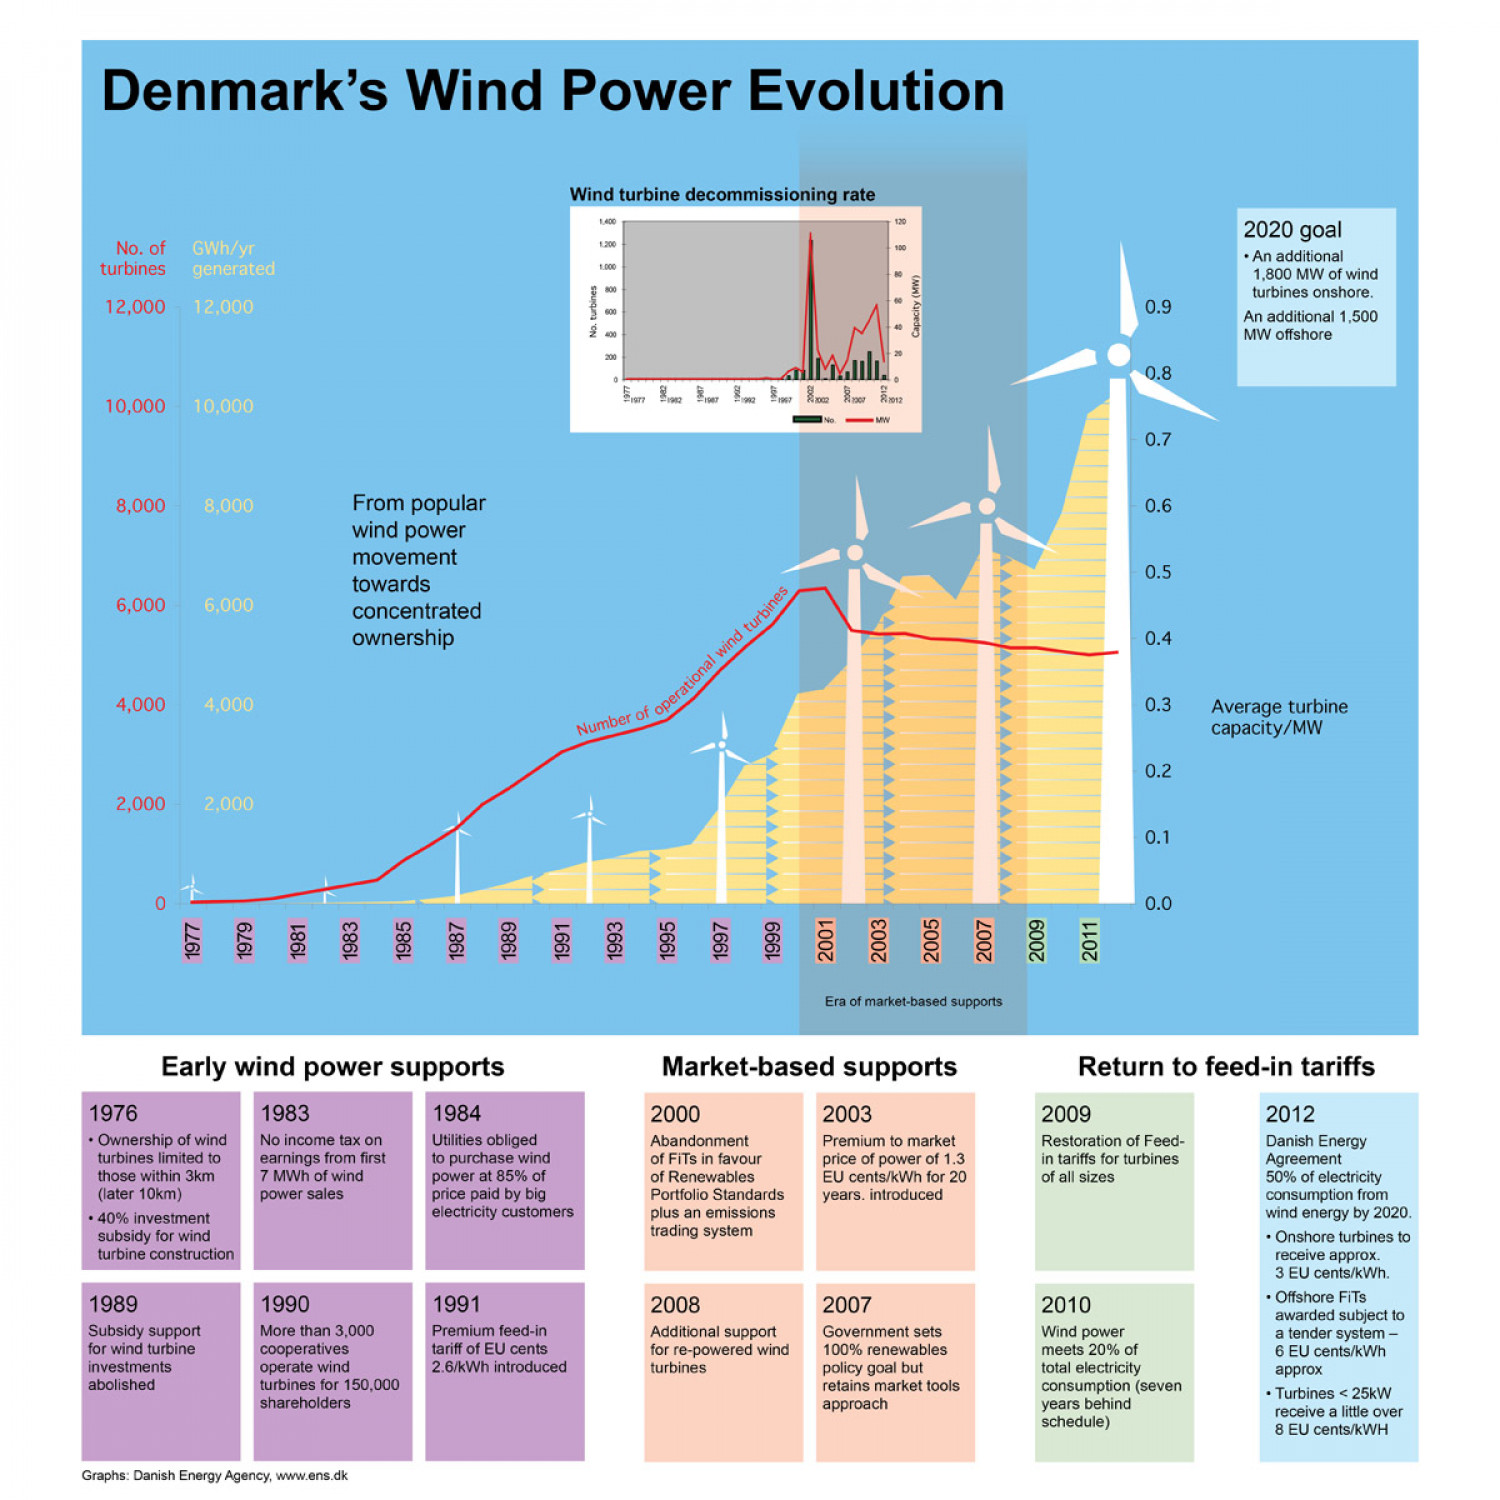 Denmark's Wind Power Evolution Infographic